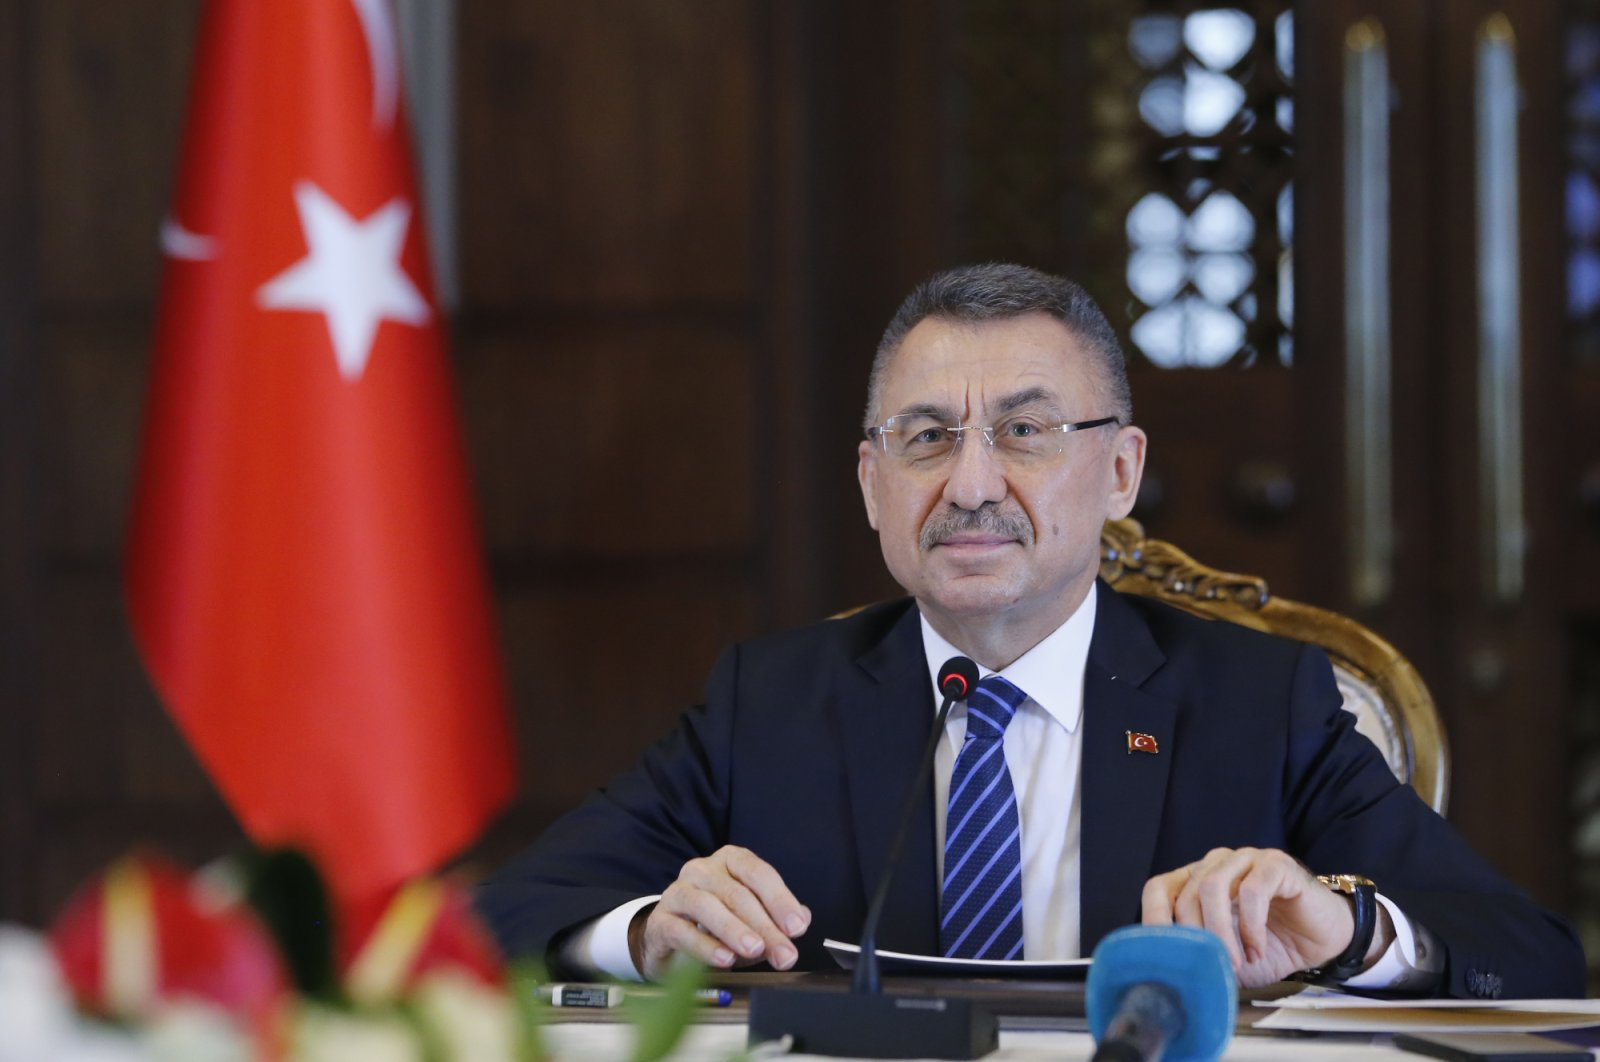 Vice President Fuat Oktay during a videoconference in Ankara, Turkey on May 21, 2020. (AA Photo)